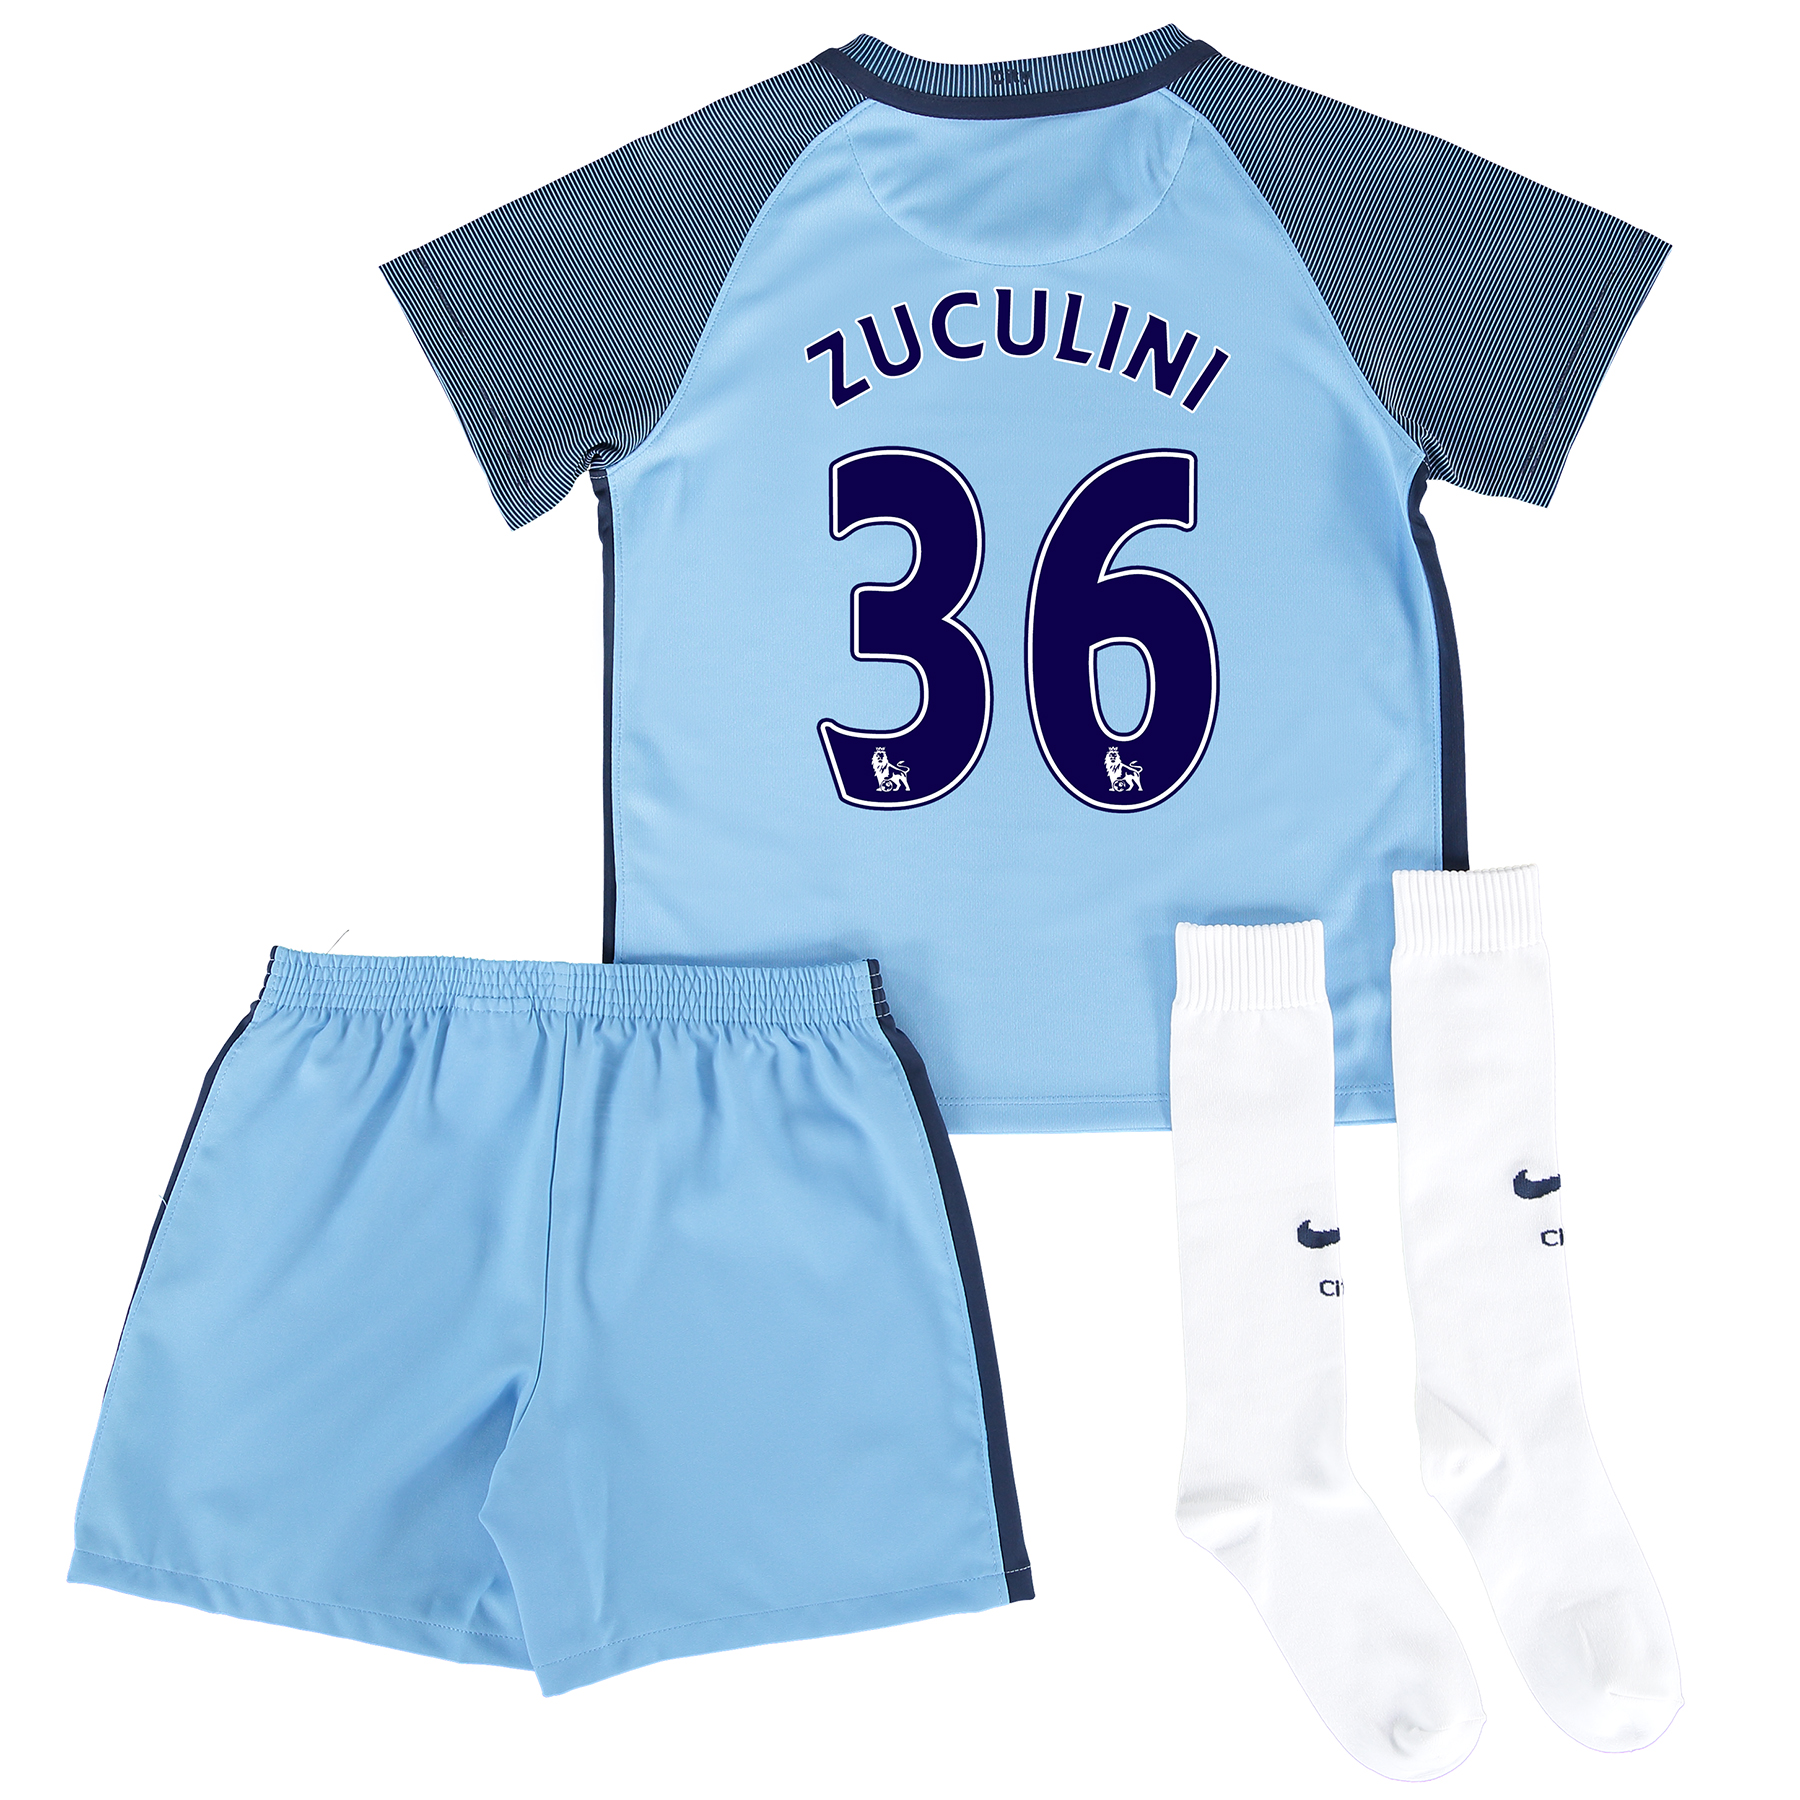 Manchester City Home Kit 2016-17 - Little Kids with Zuculini 36 printi